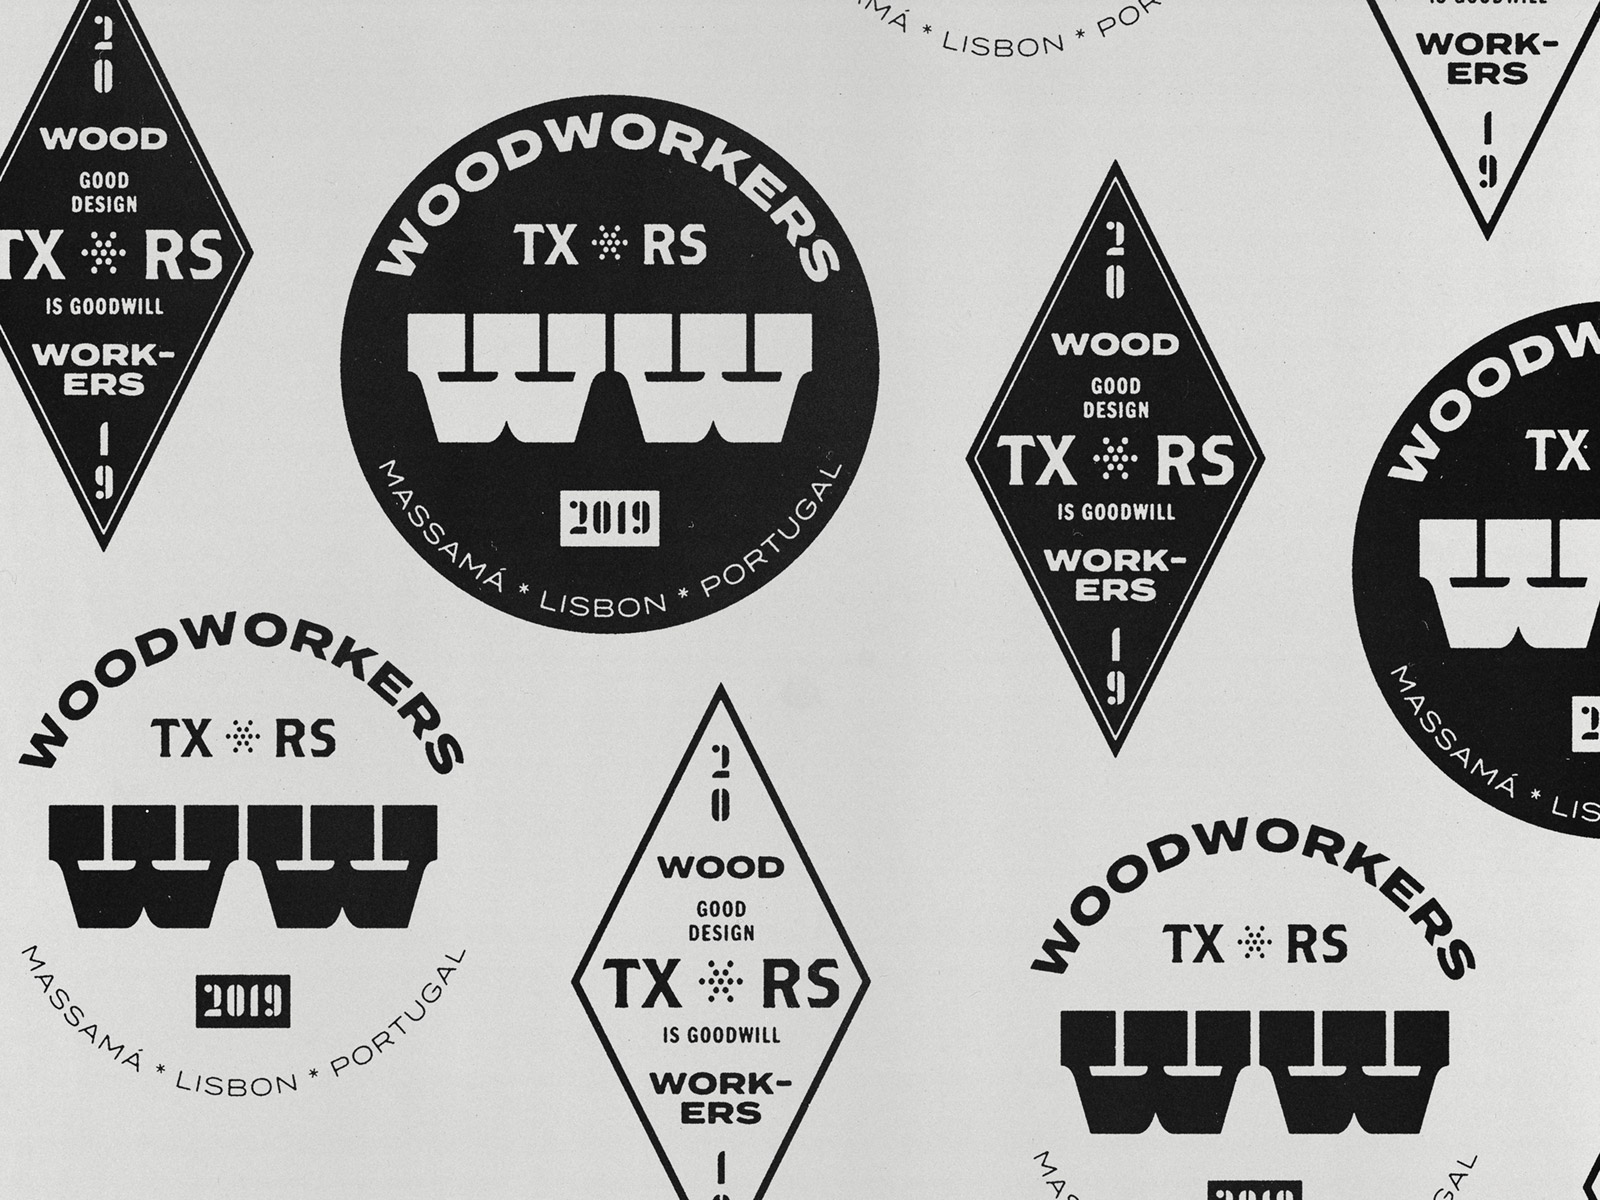 Woodworkers logo explorations